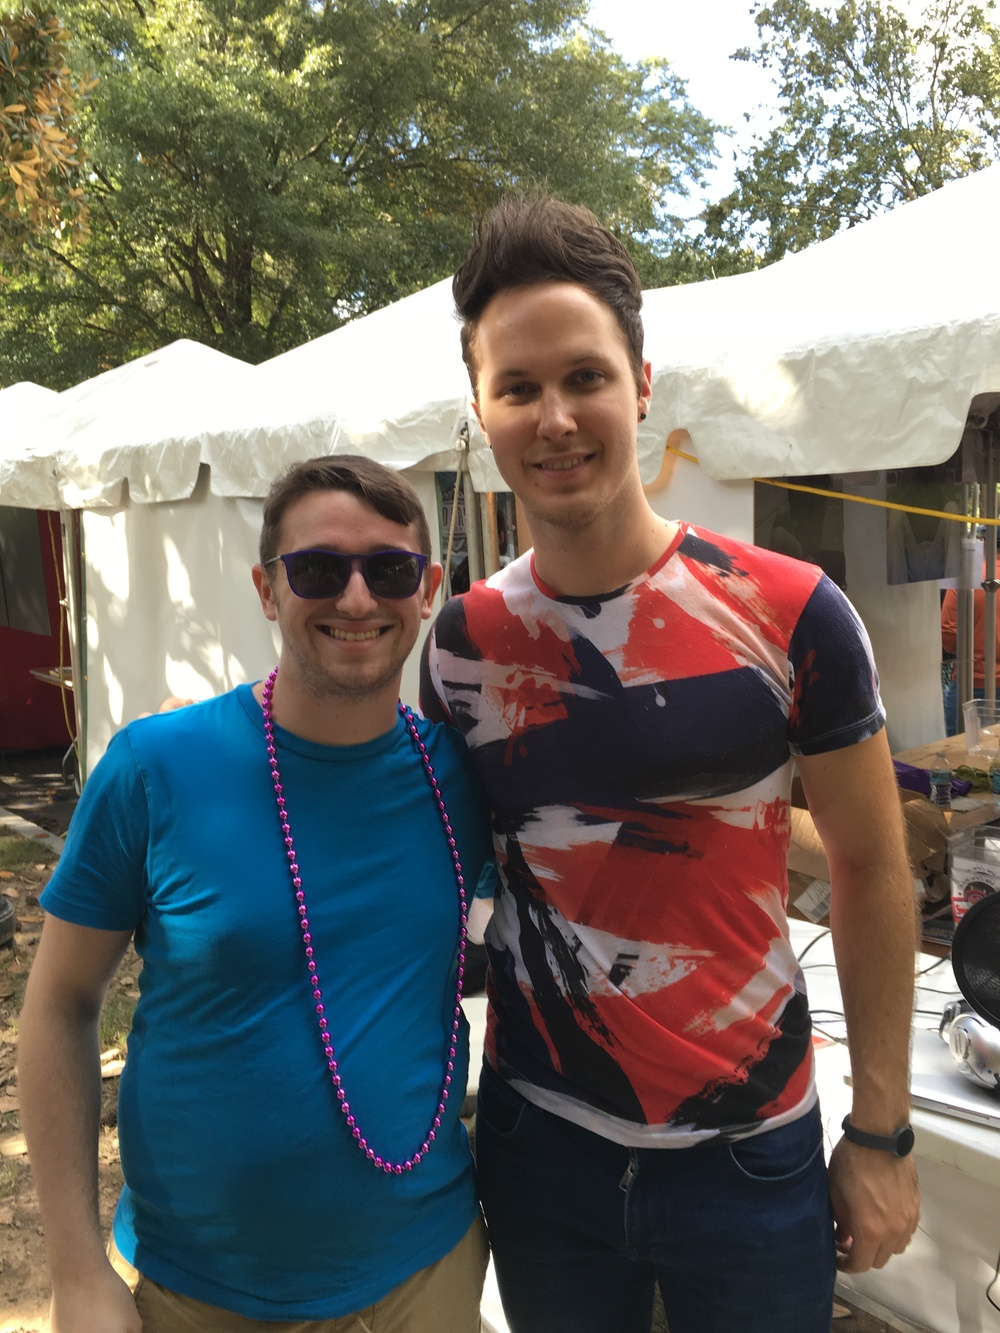 Daniel Ashley Pierce - 2015 Atlanta Pride Parade Grand Marshal